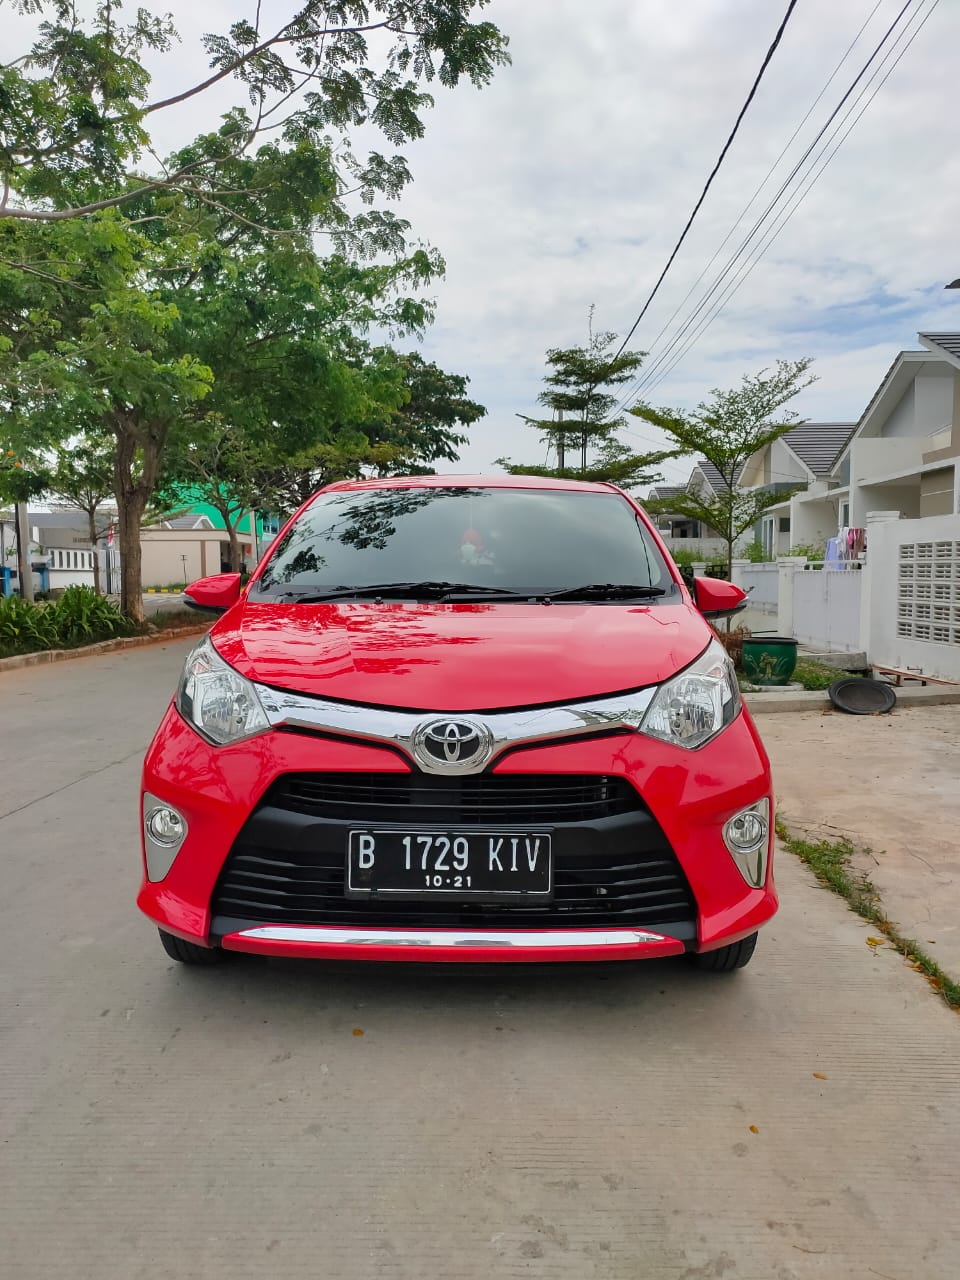 TOYOTA CALYA G MT Th 2016 / B 1729 KIV